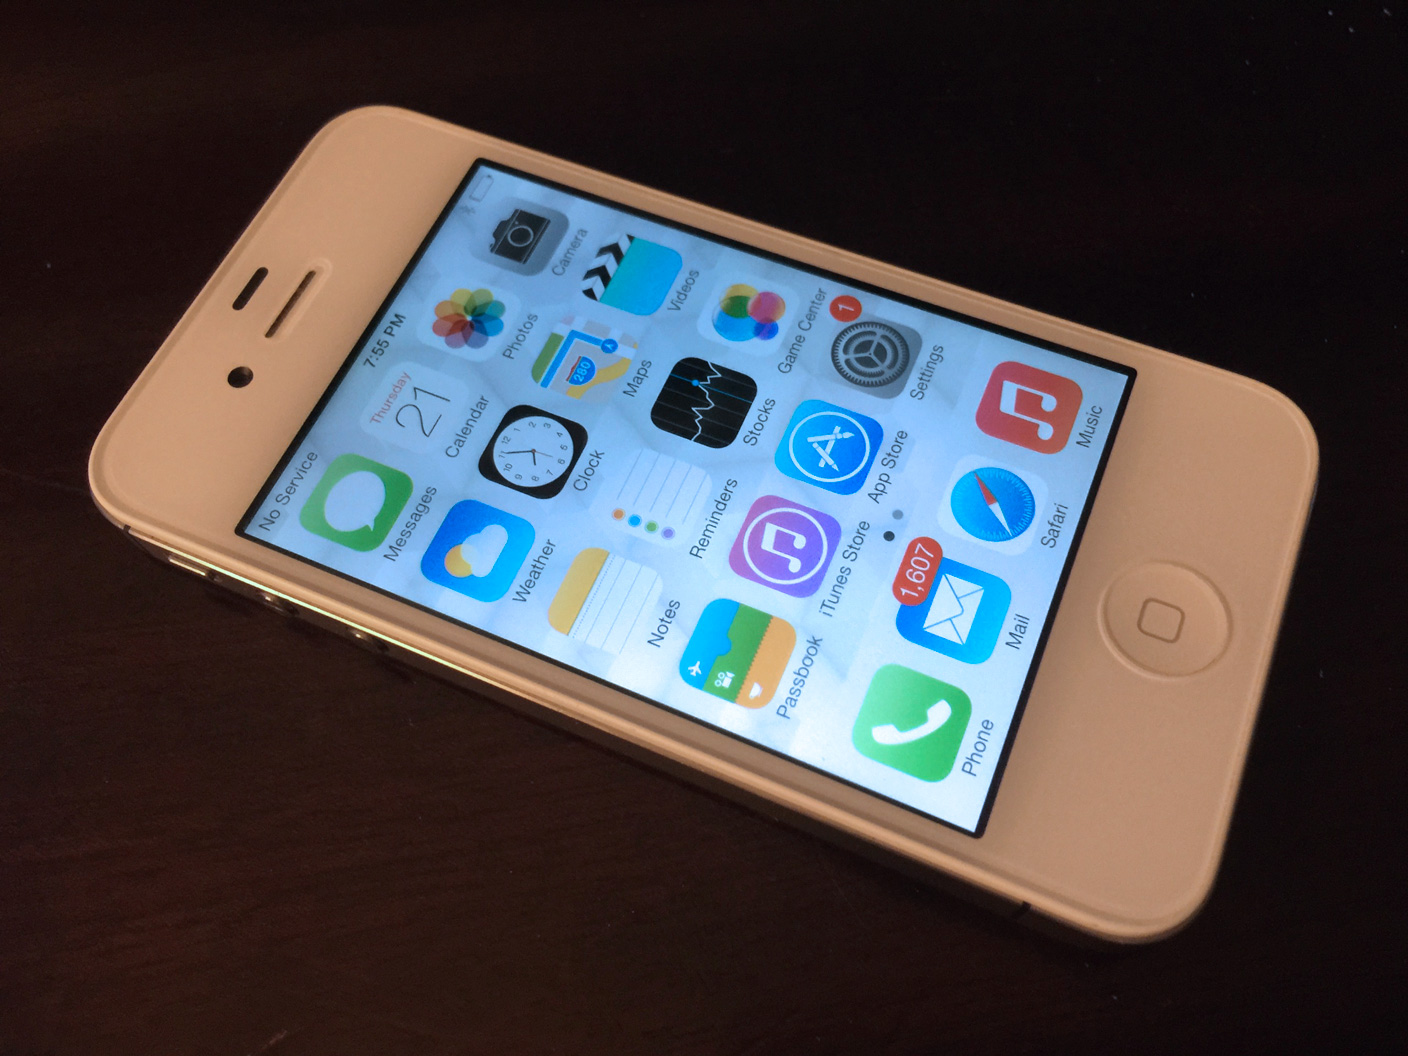 iphone4sios70